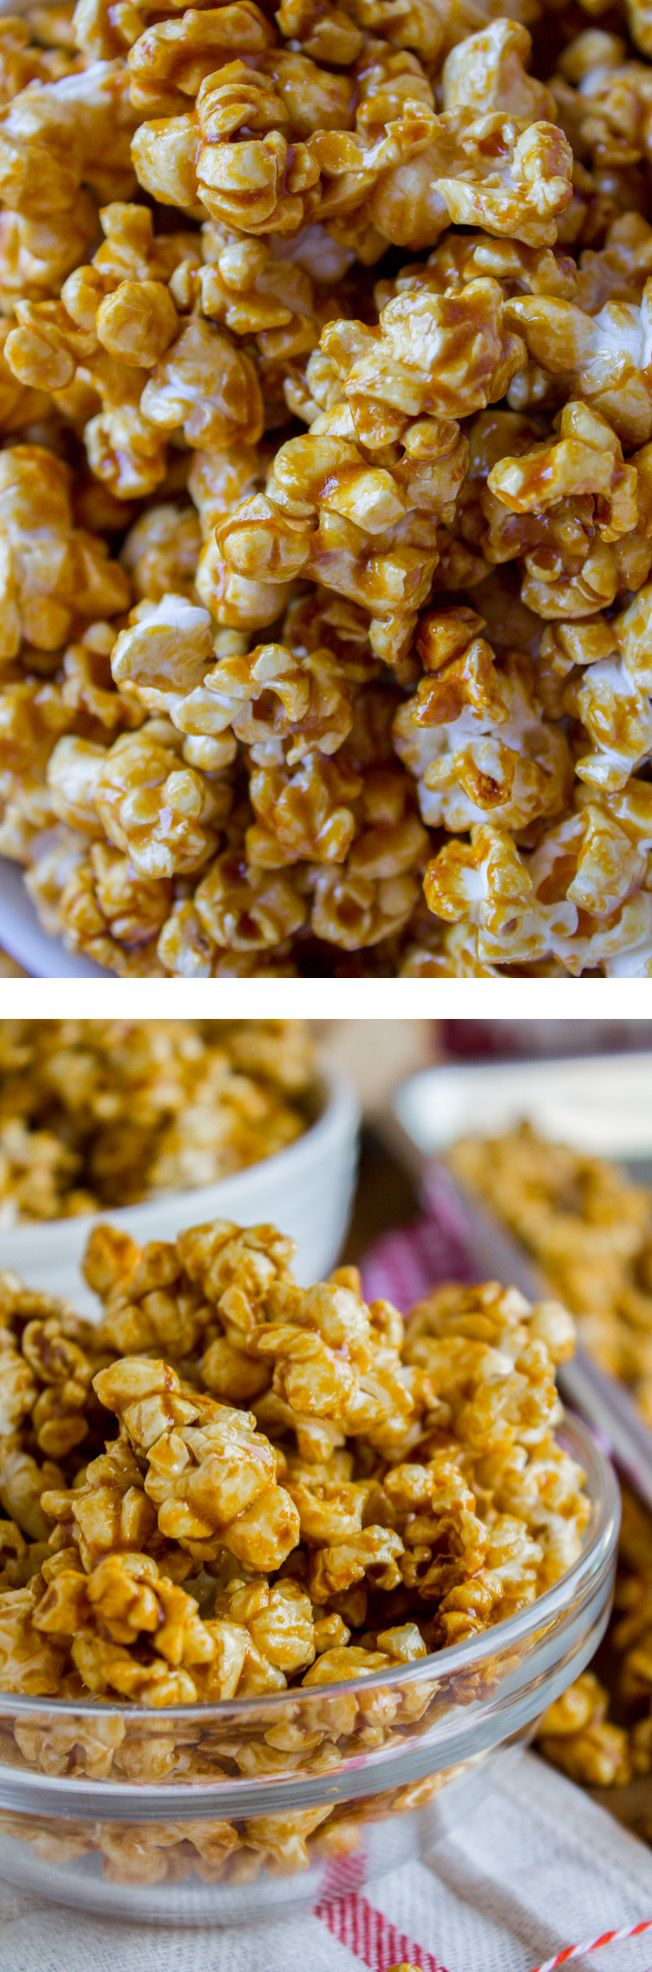 This super easy recipe for Caramel Popcorn takes 10 MINUTES start to finish! You make it in a brown paper bag in the microwave. It is SO crunchy and flavorful! And you don't have to stir a giant pan in the oven for an hour. WIN. The other day I was on the phone telling …